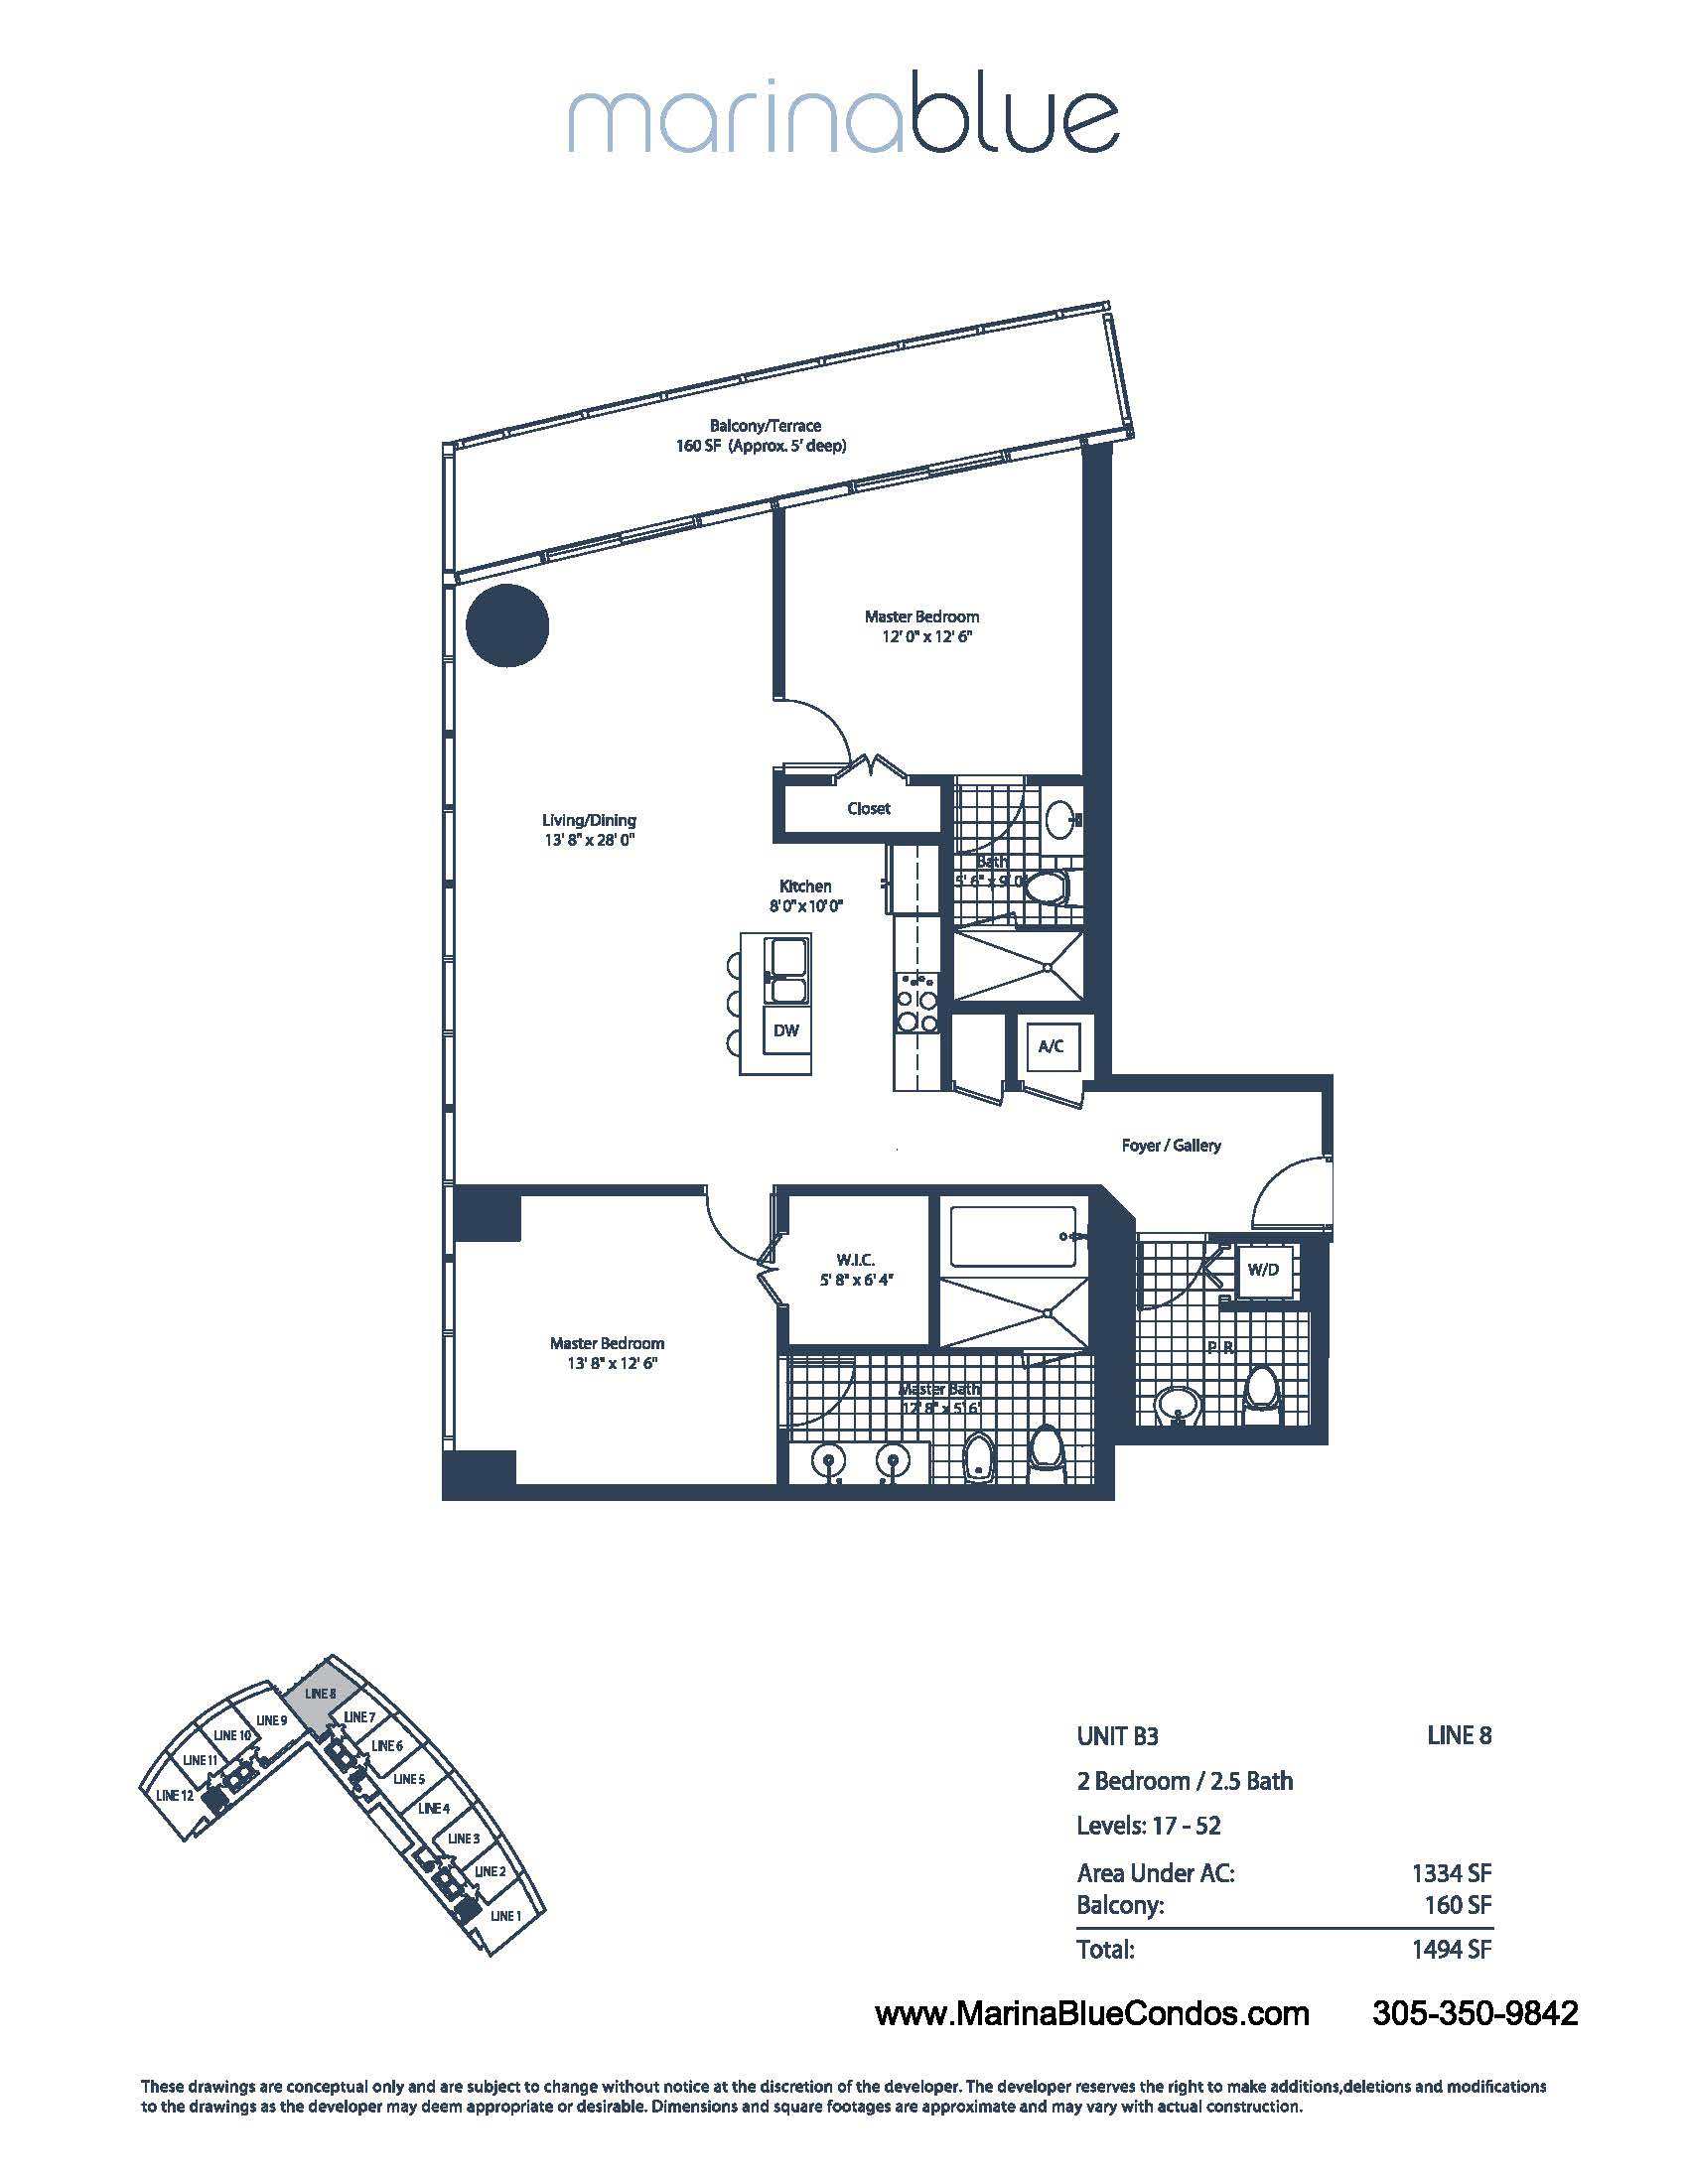 just sold marina blue unit 2508 in downtown miami